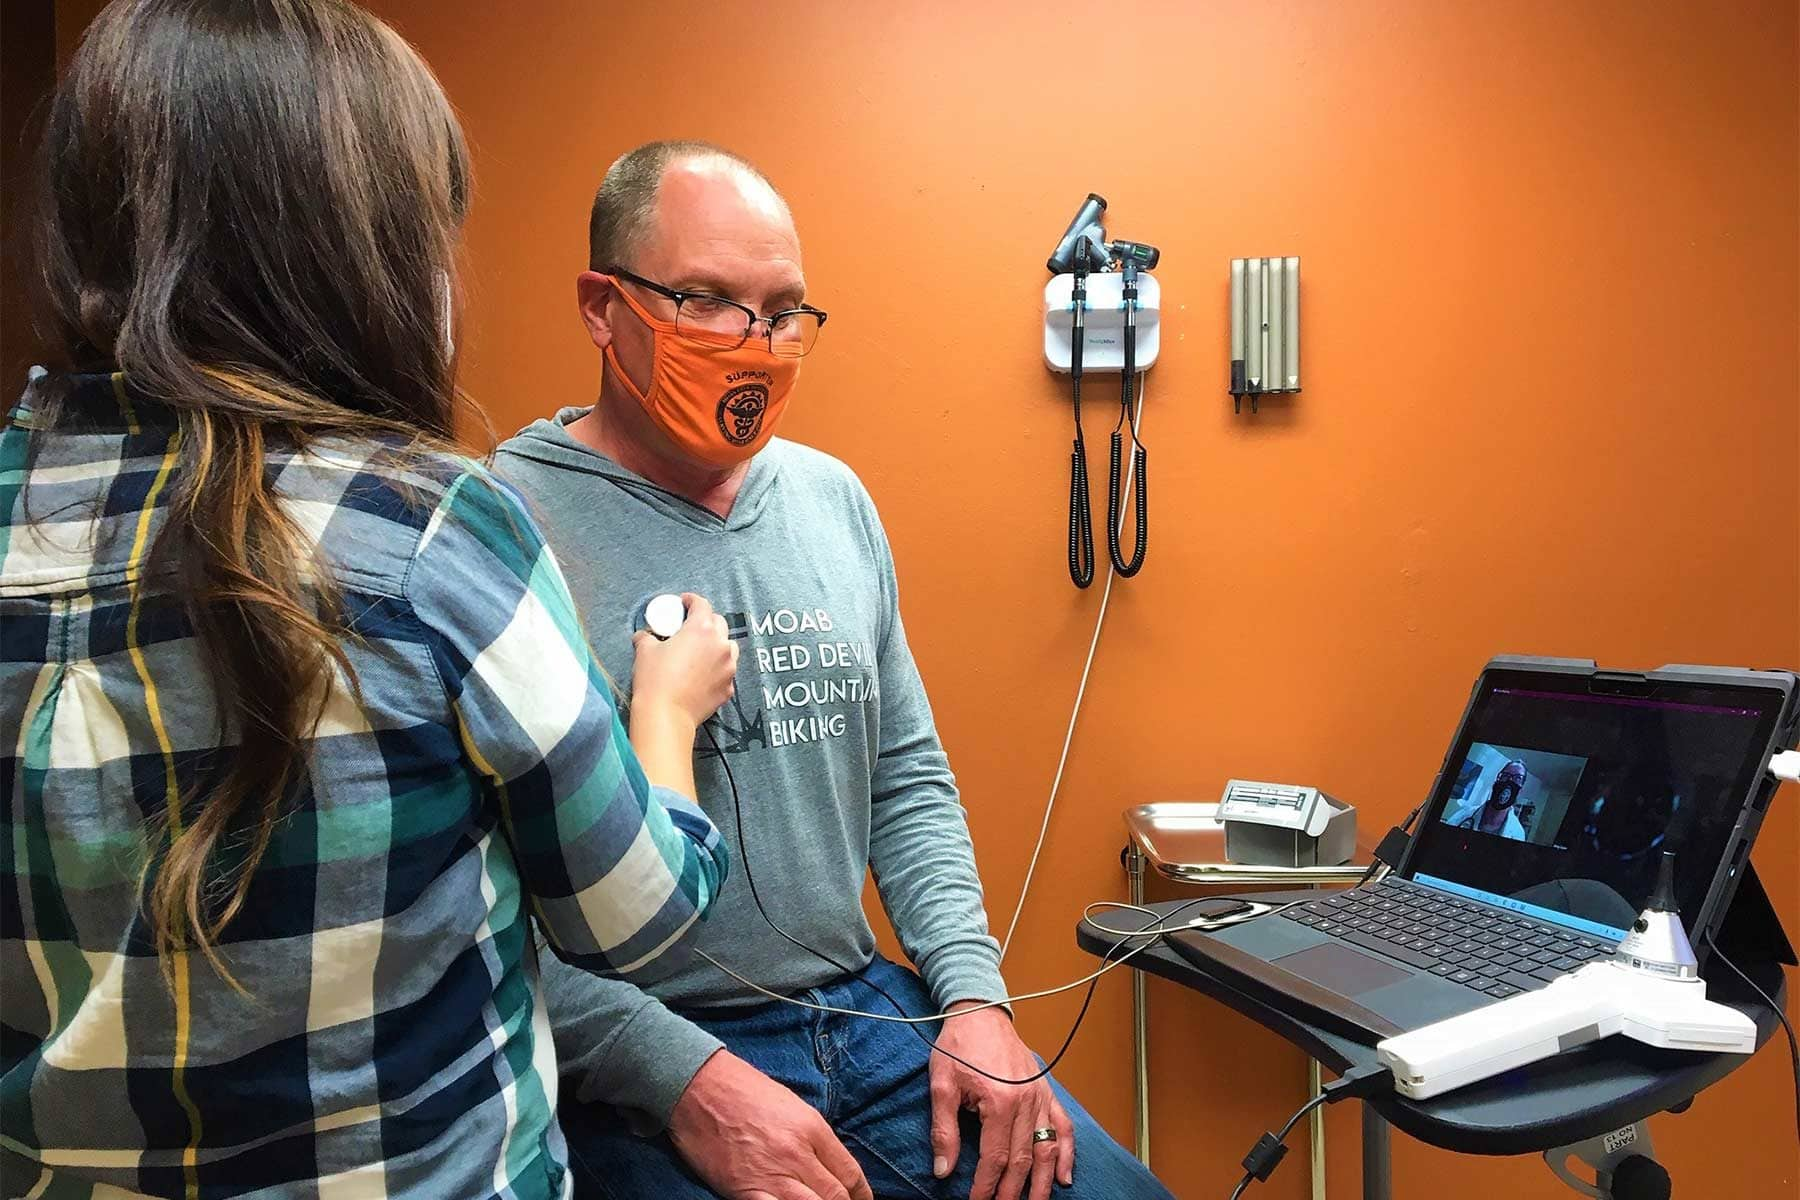 Clinic staff at Moab Free Health Clinic in Moab, Utah, learn to use telehealth equipment during a training supported by Americares COVID-19 telehealth grant funding. Photo courtesy of Moab Free Health Clinic.